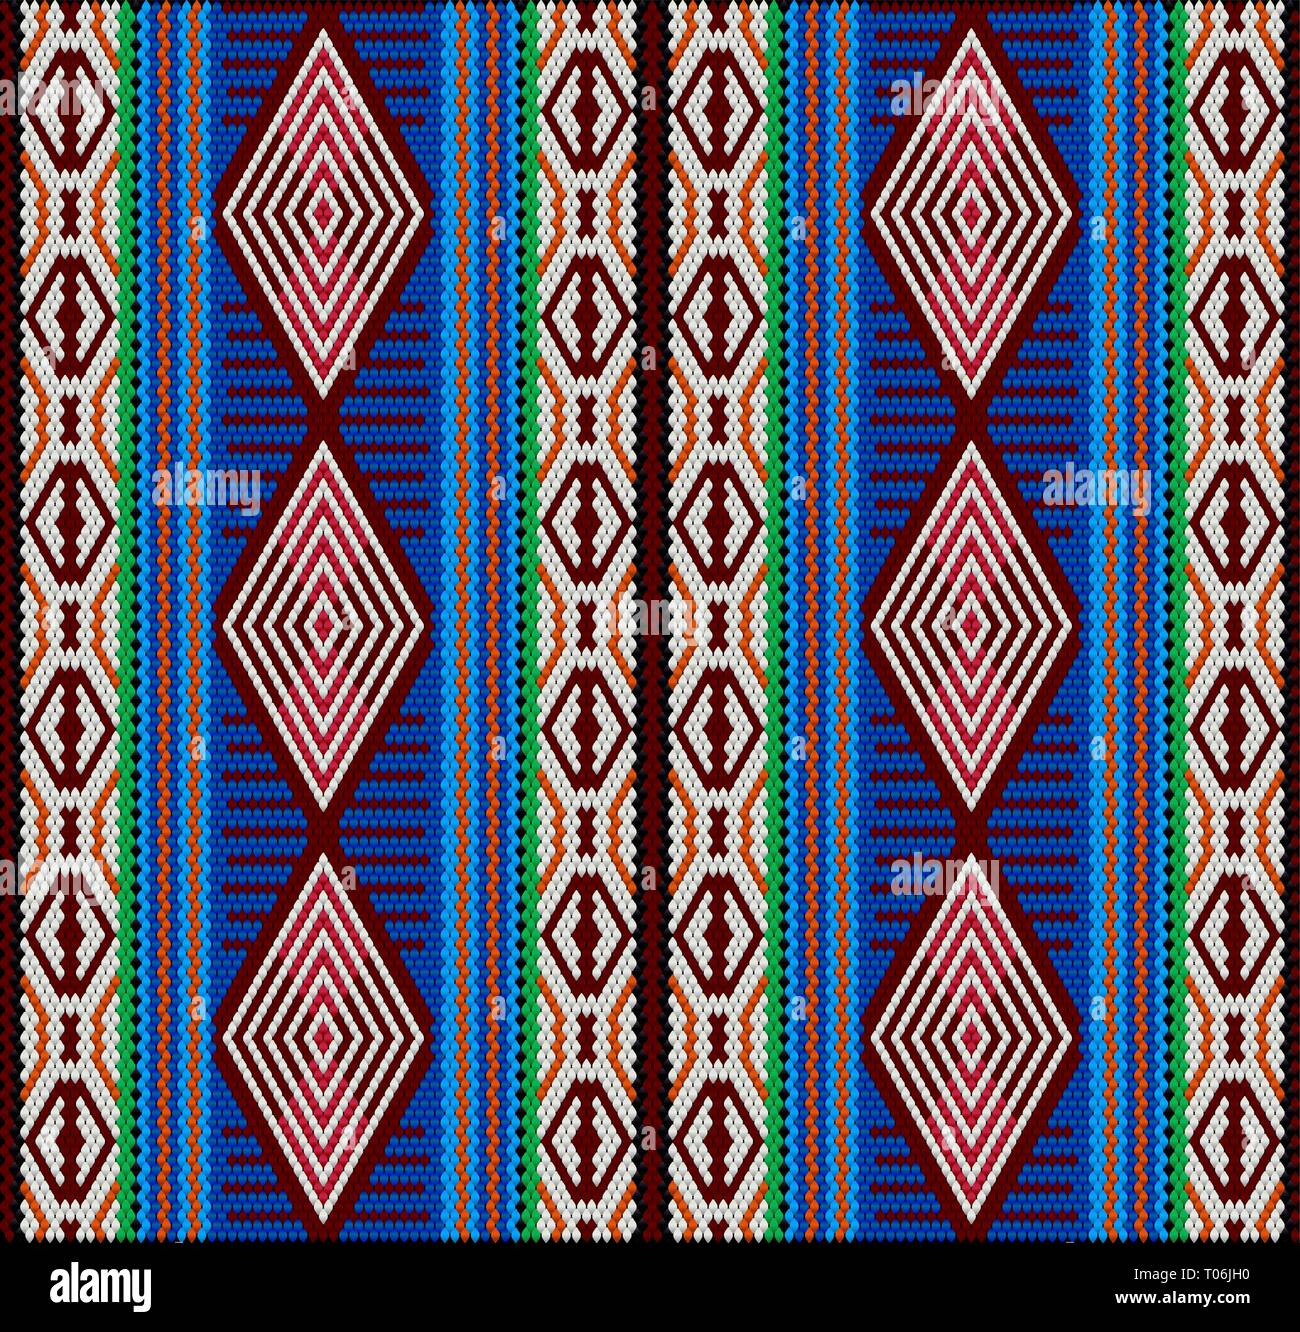 Al-Sadu weaving is a traditional form of embroidery woven by Bedouin women by hand. The pattern brings luck and wealth. - Stock Vector